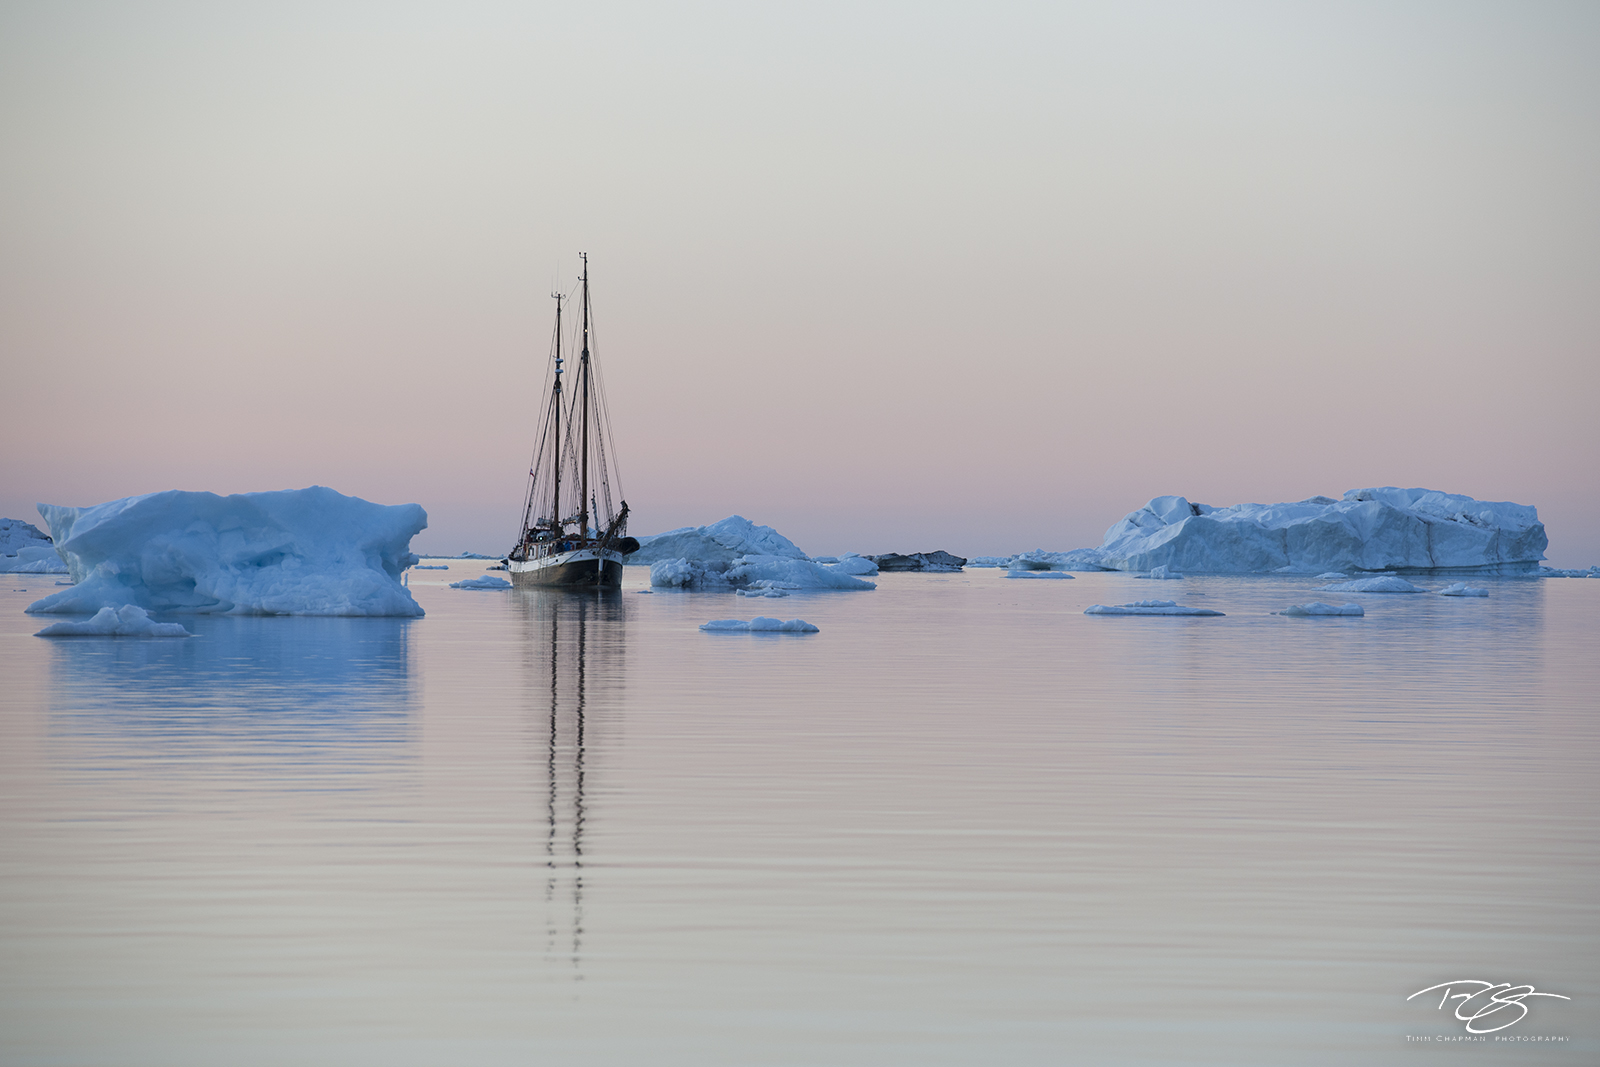 ice; iceberg, donna wood, sailboat, fishing vessel, ship, schooner, reflection, eventide, dusk, twilight, pastel sky, blue ice, calm, tranquil, peaceful